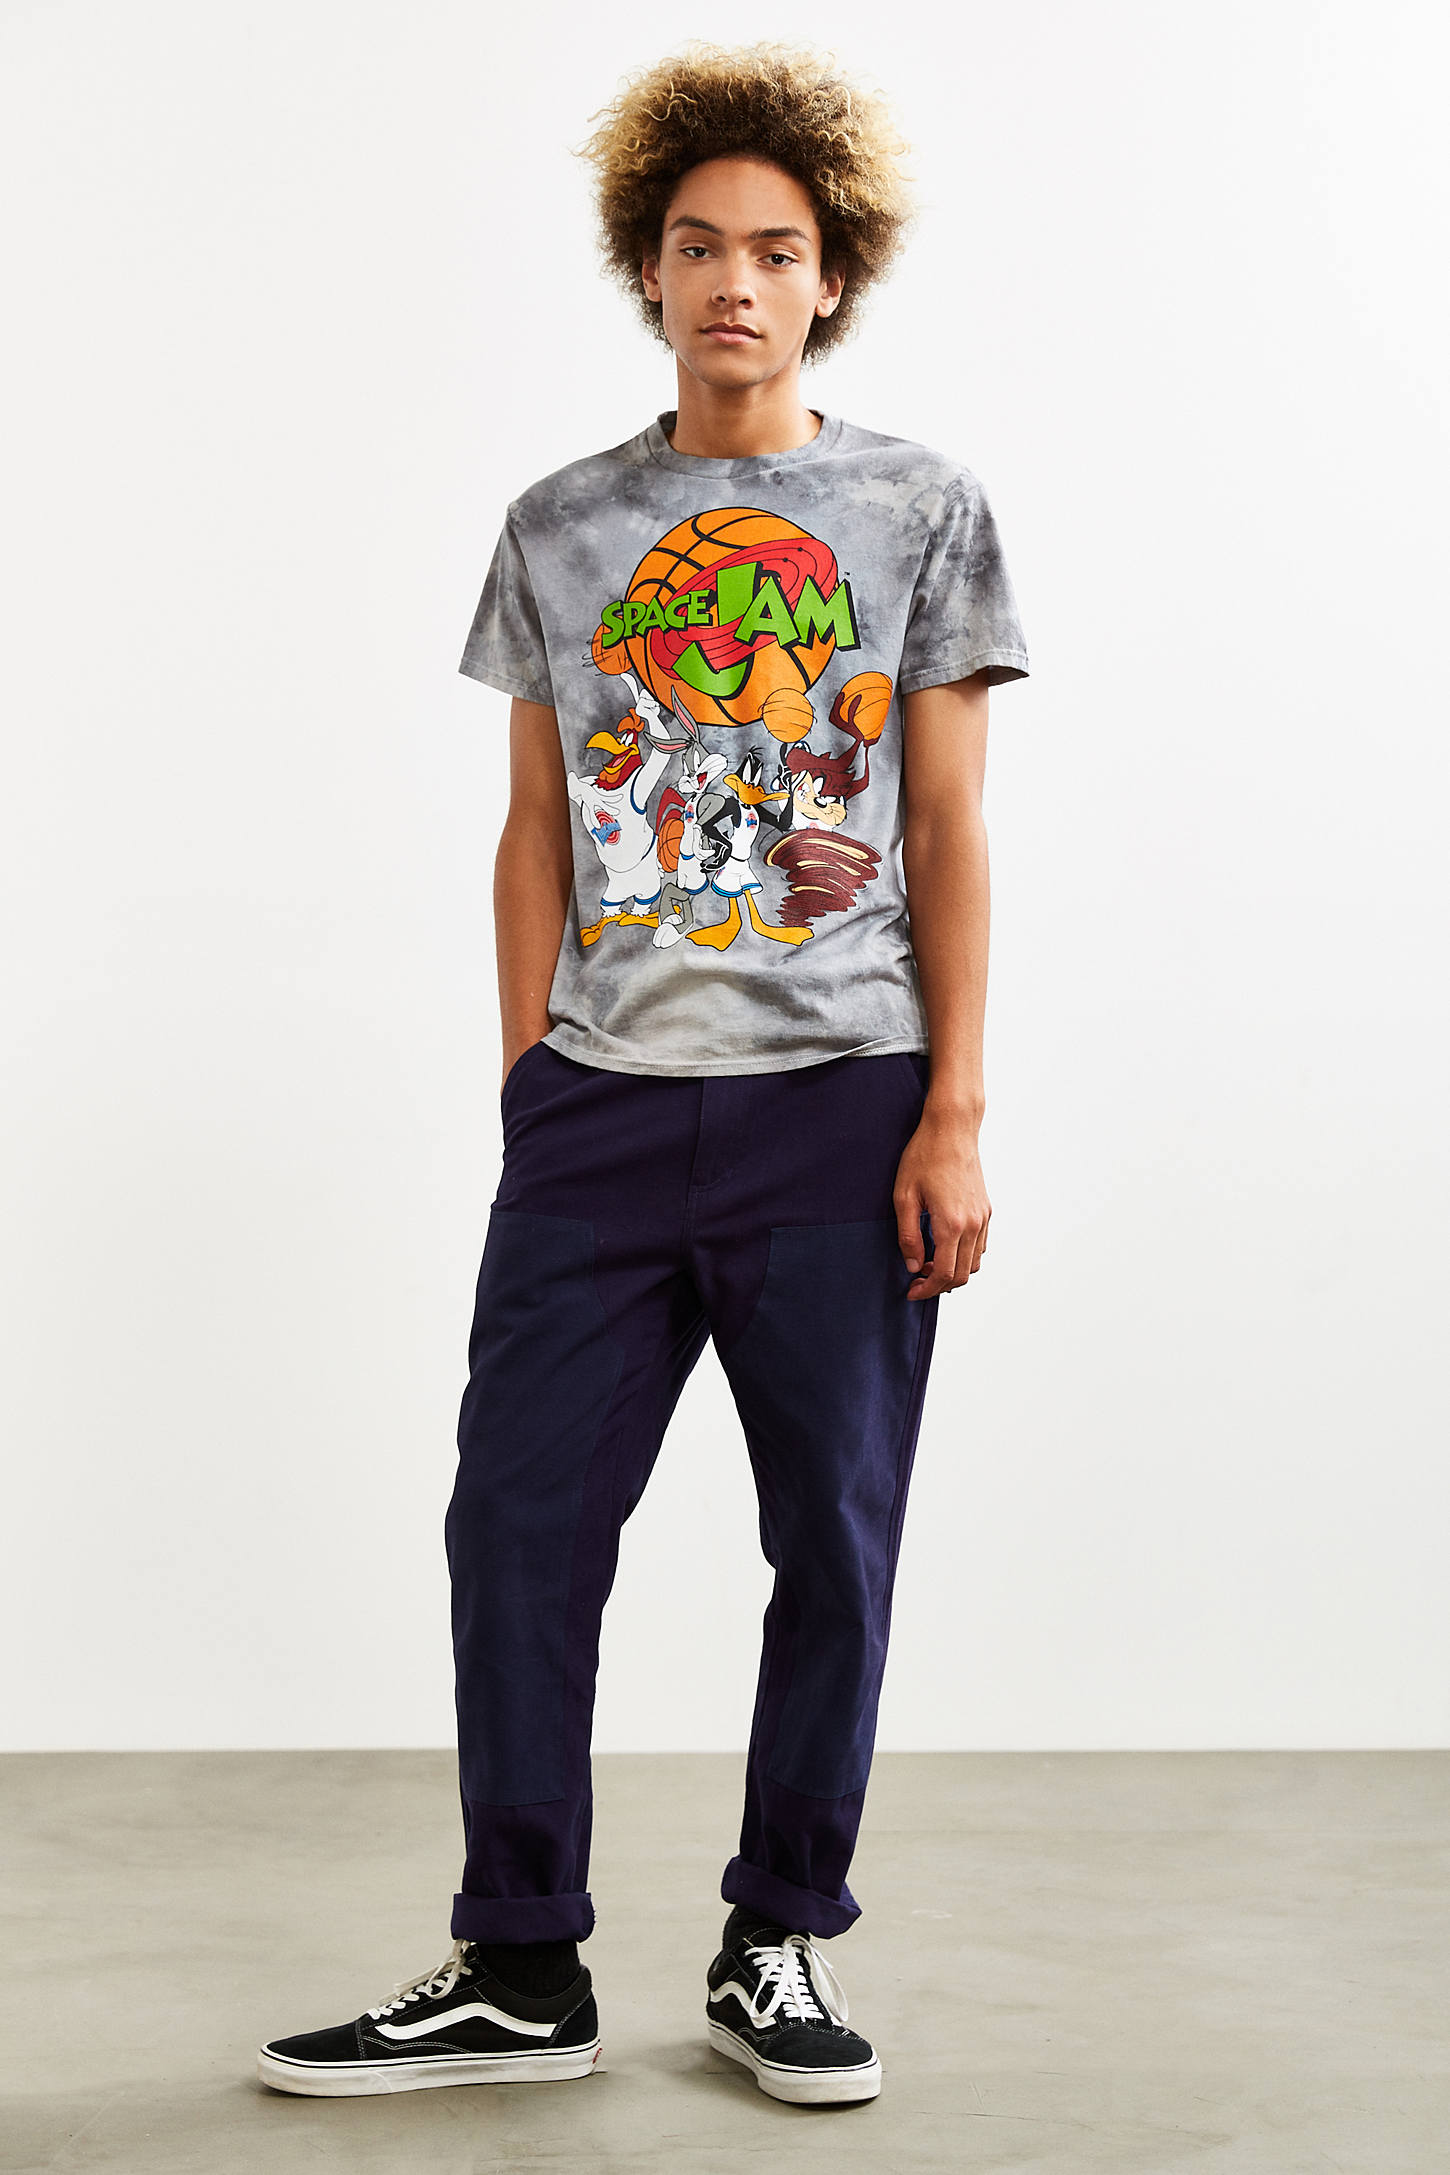 Black t shirt urban outfitters - Slide View 6 Space Jam Dye Tee